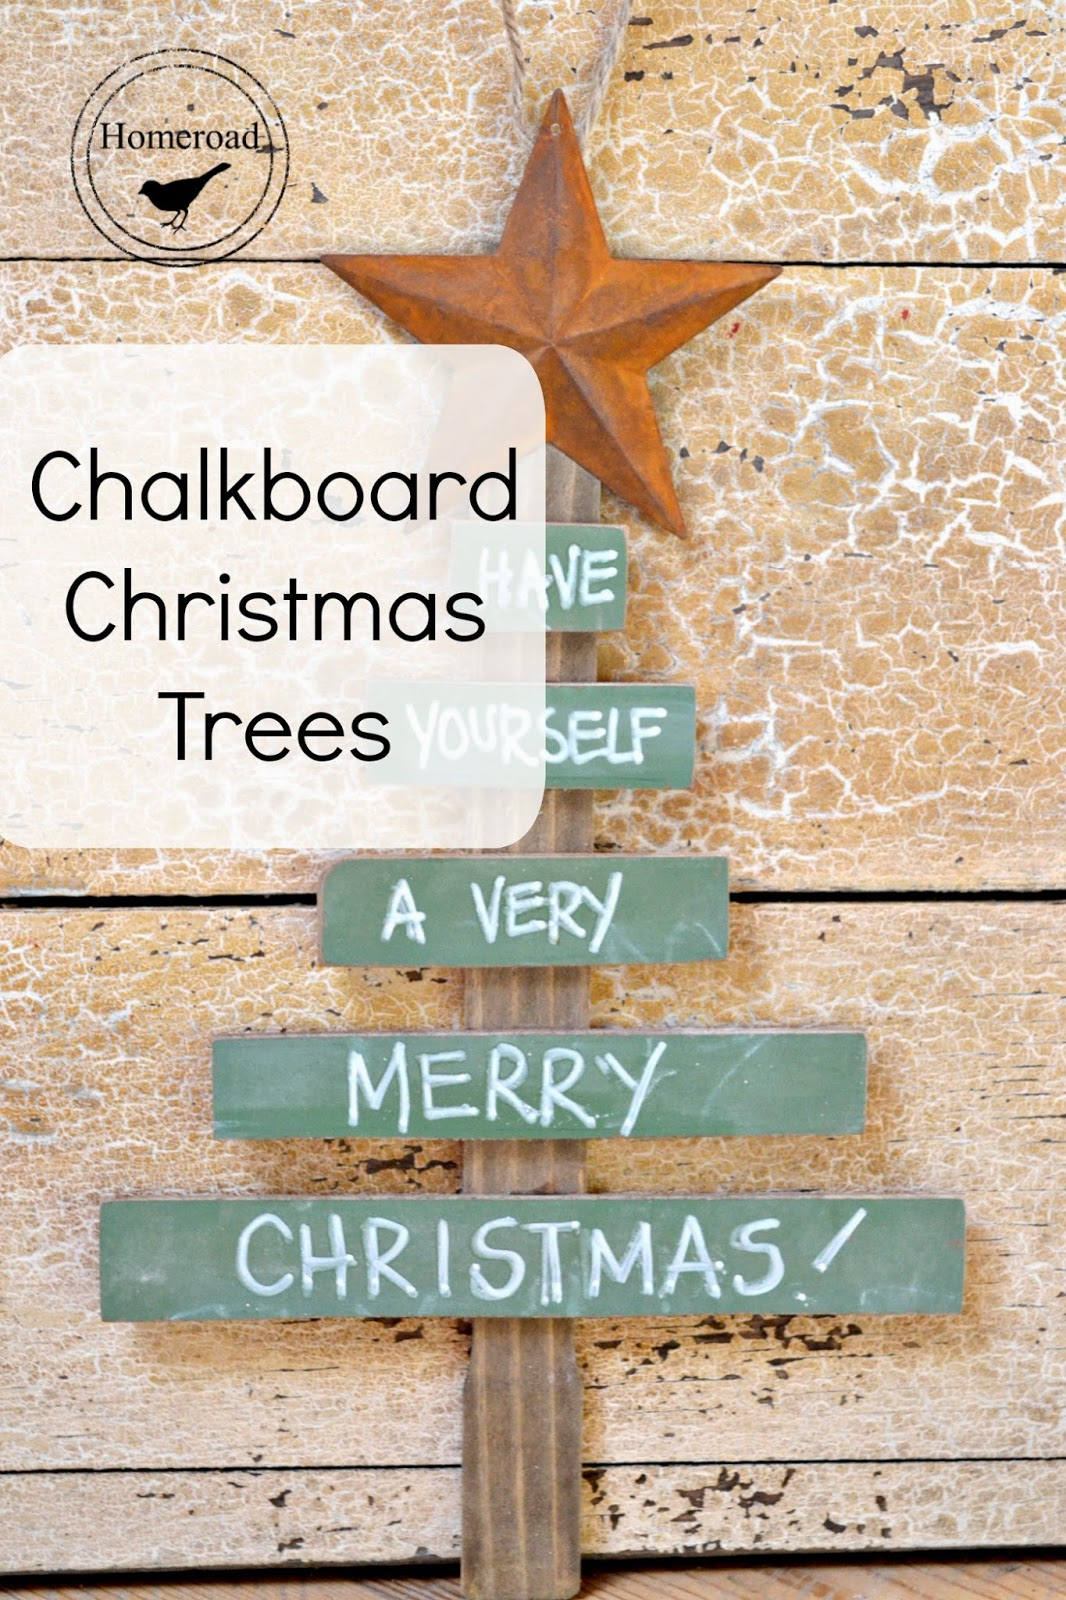 Chalkboard-christmas-trees www.homeroad.net